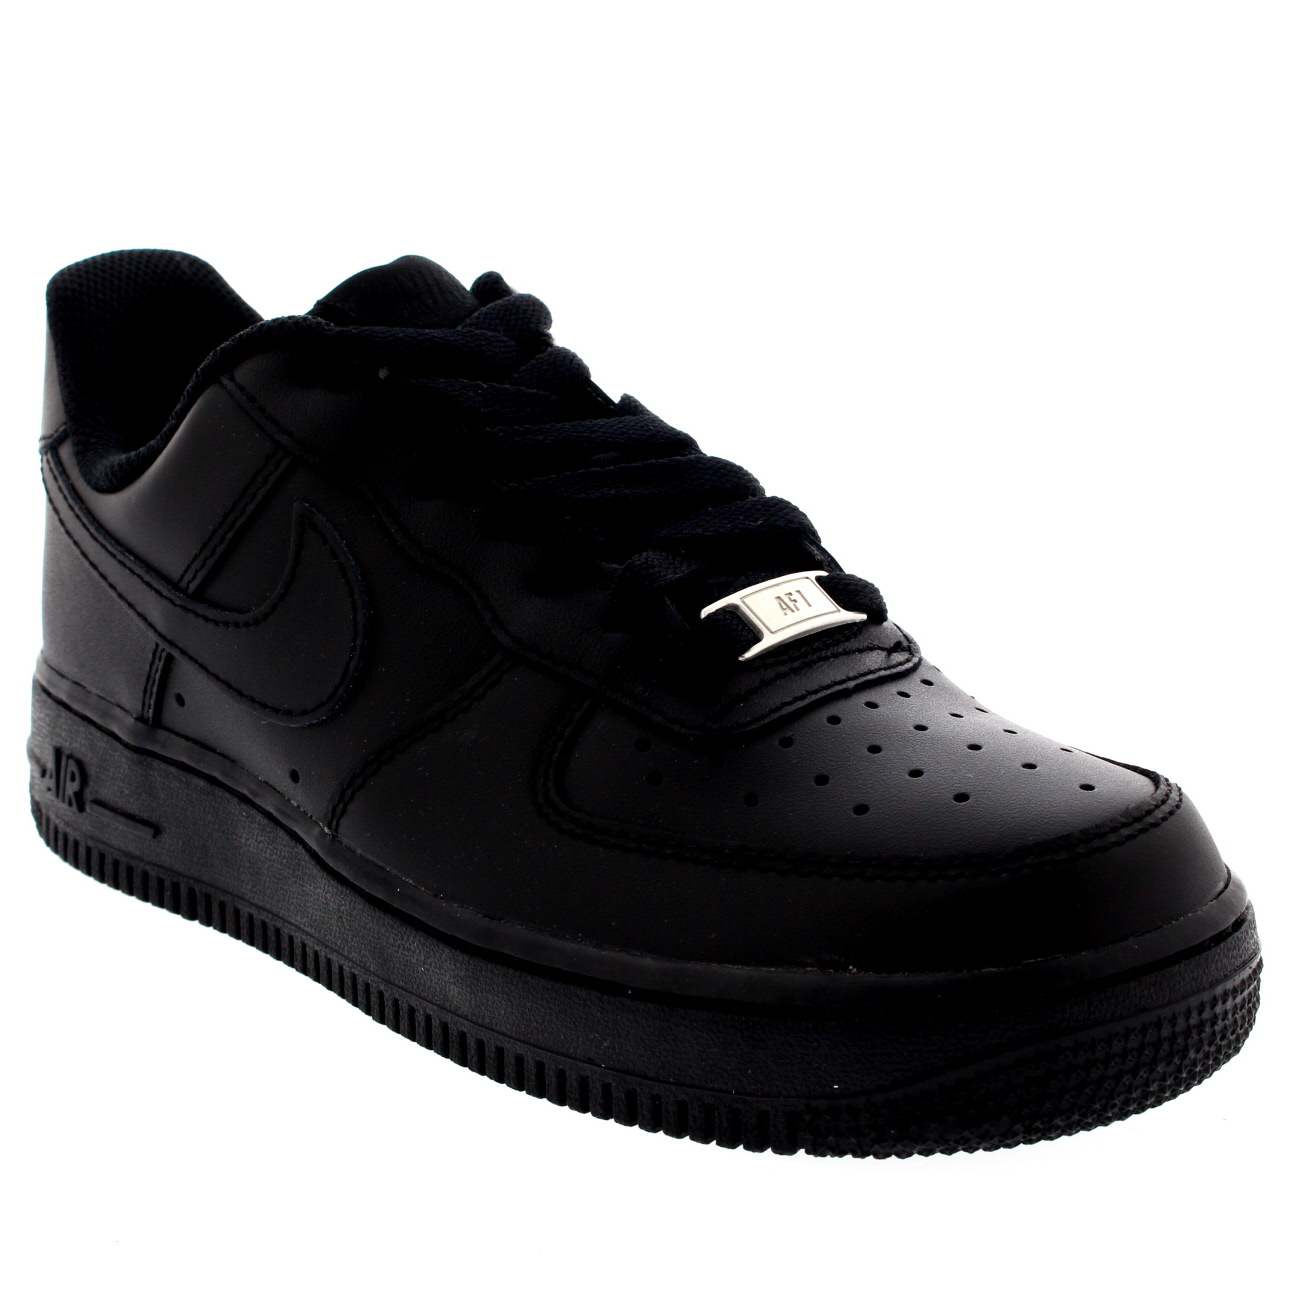 size 40 d2cca acc63 Donna Nike Air Force 1 07 Pizzo Sportivos Corsa Basso Top Formatori EU  3642.5 - mainstreetblytheville.org